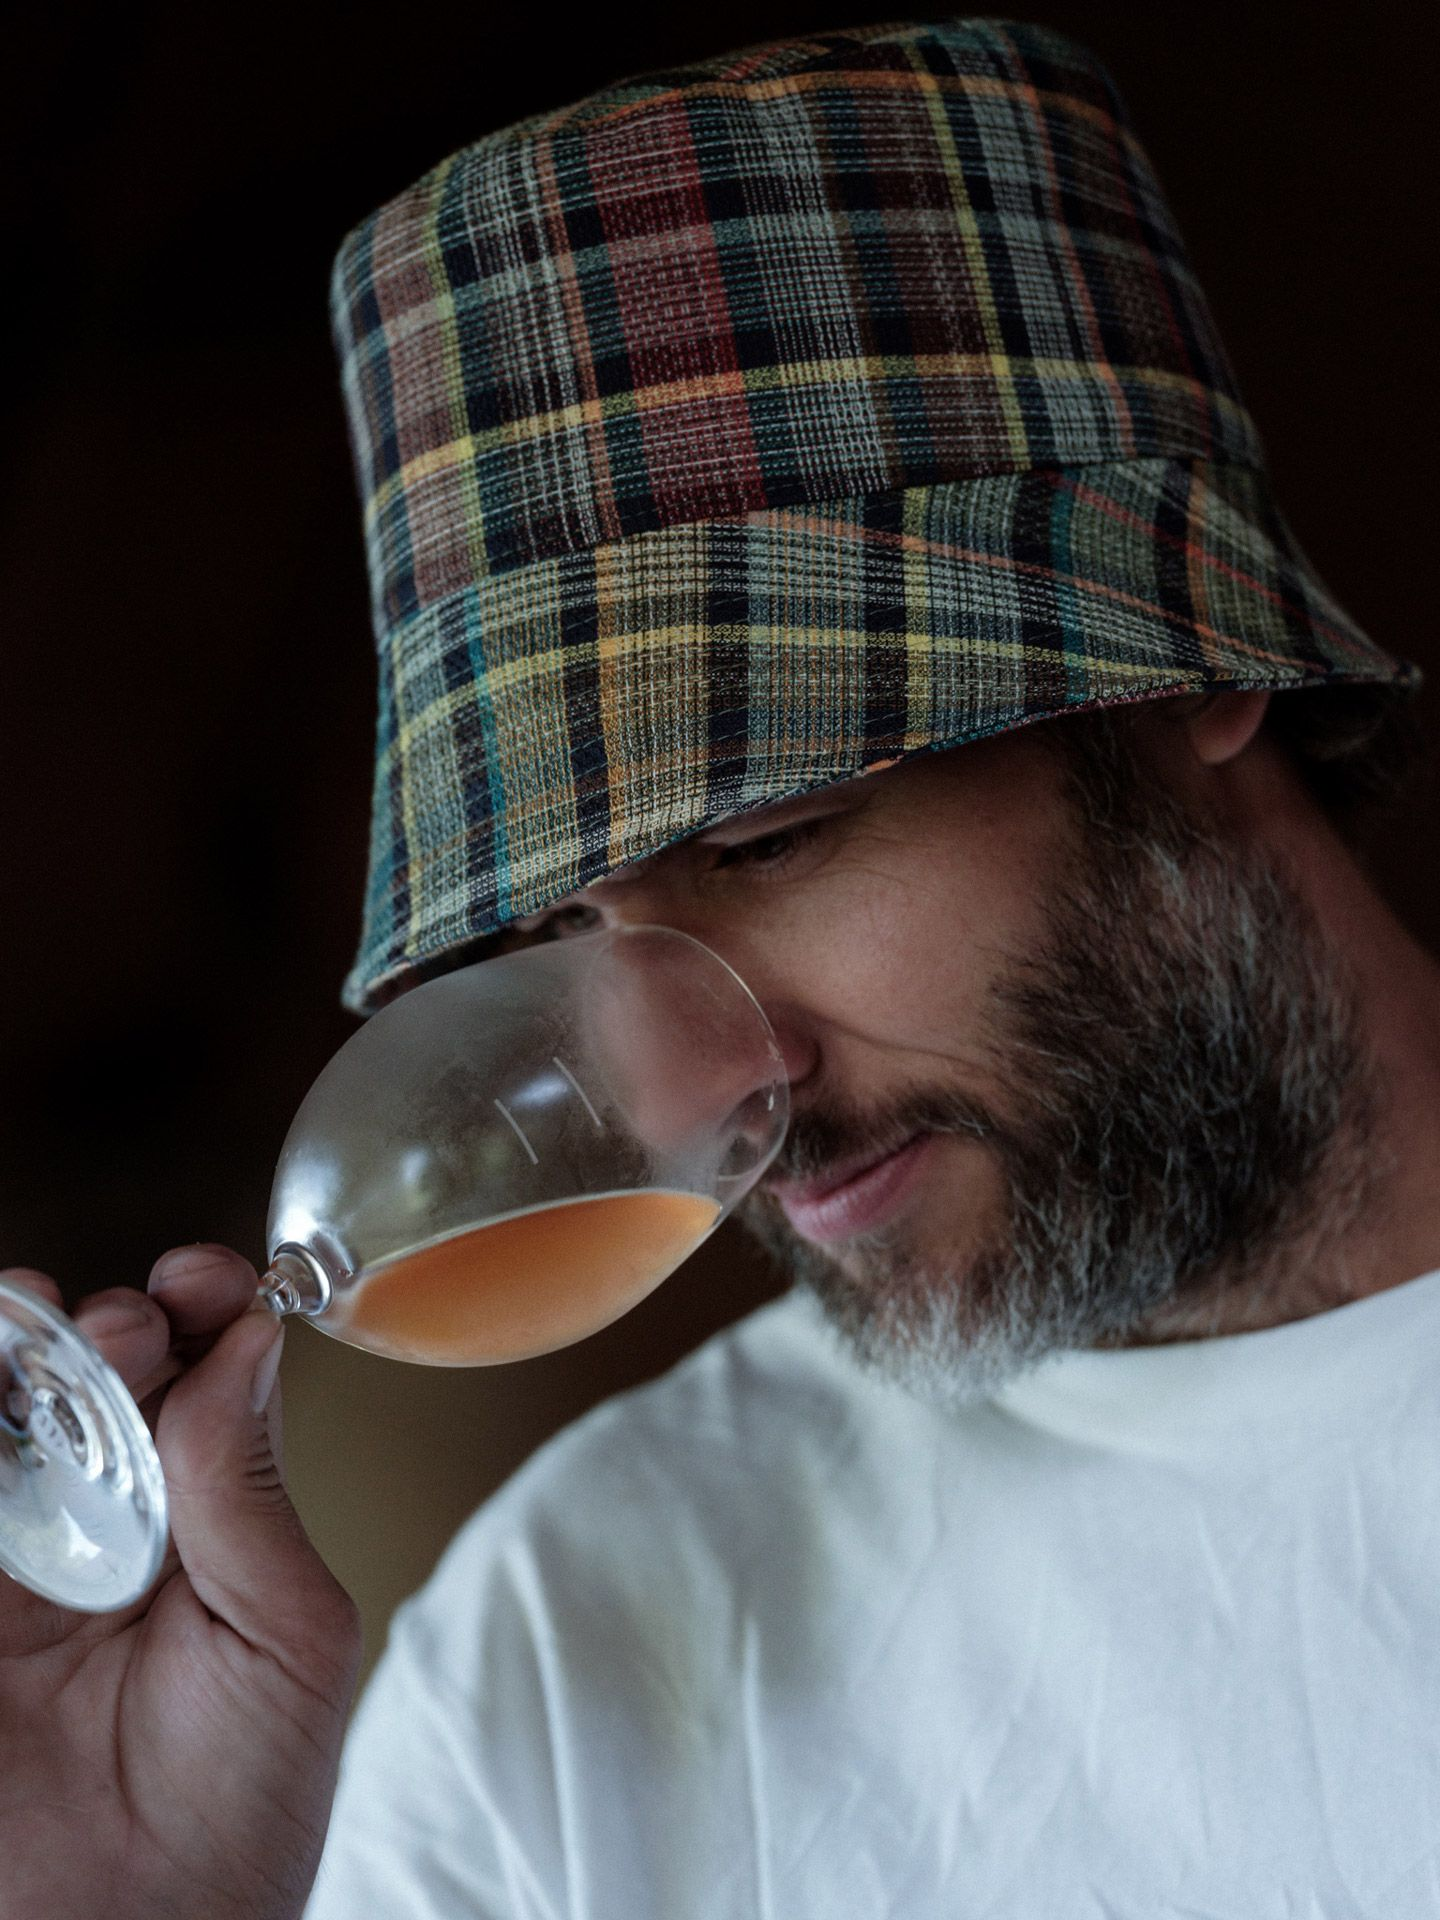 winemaker from Pinard & Filles smelling a glass of orange wine by Alexi Hobbs for Larose Paris